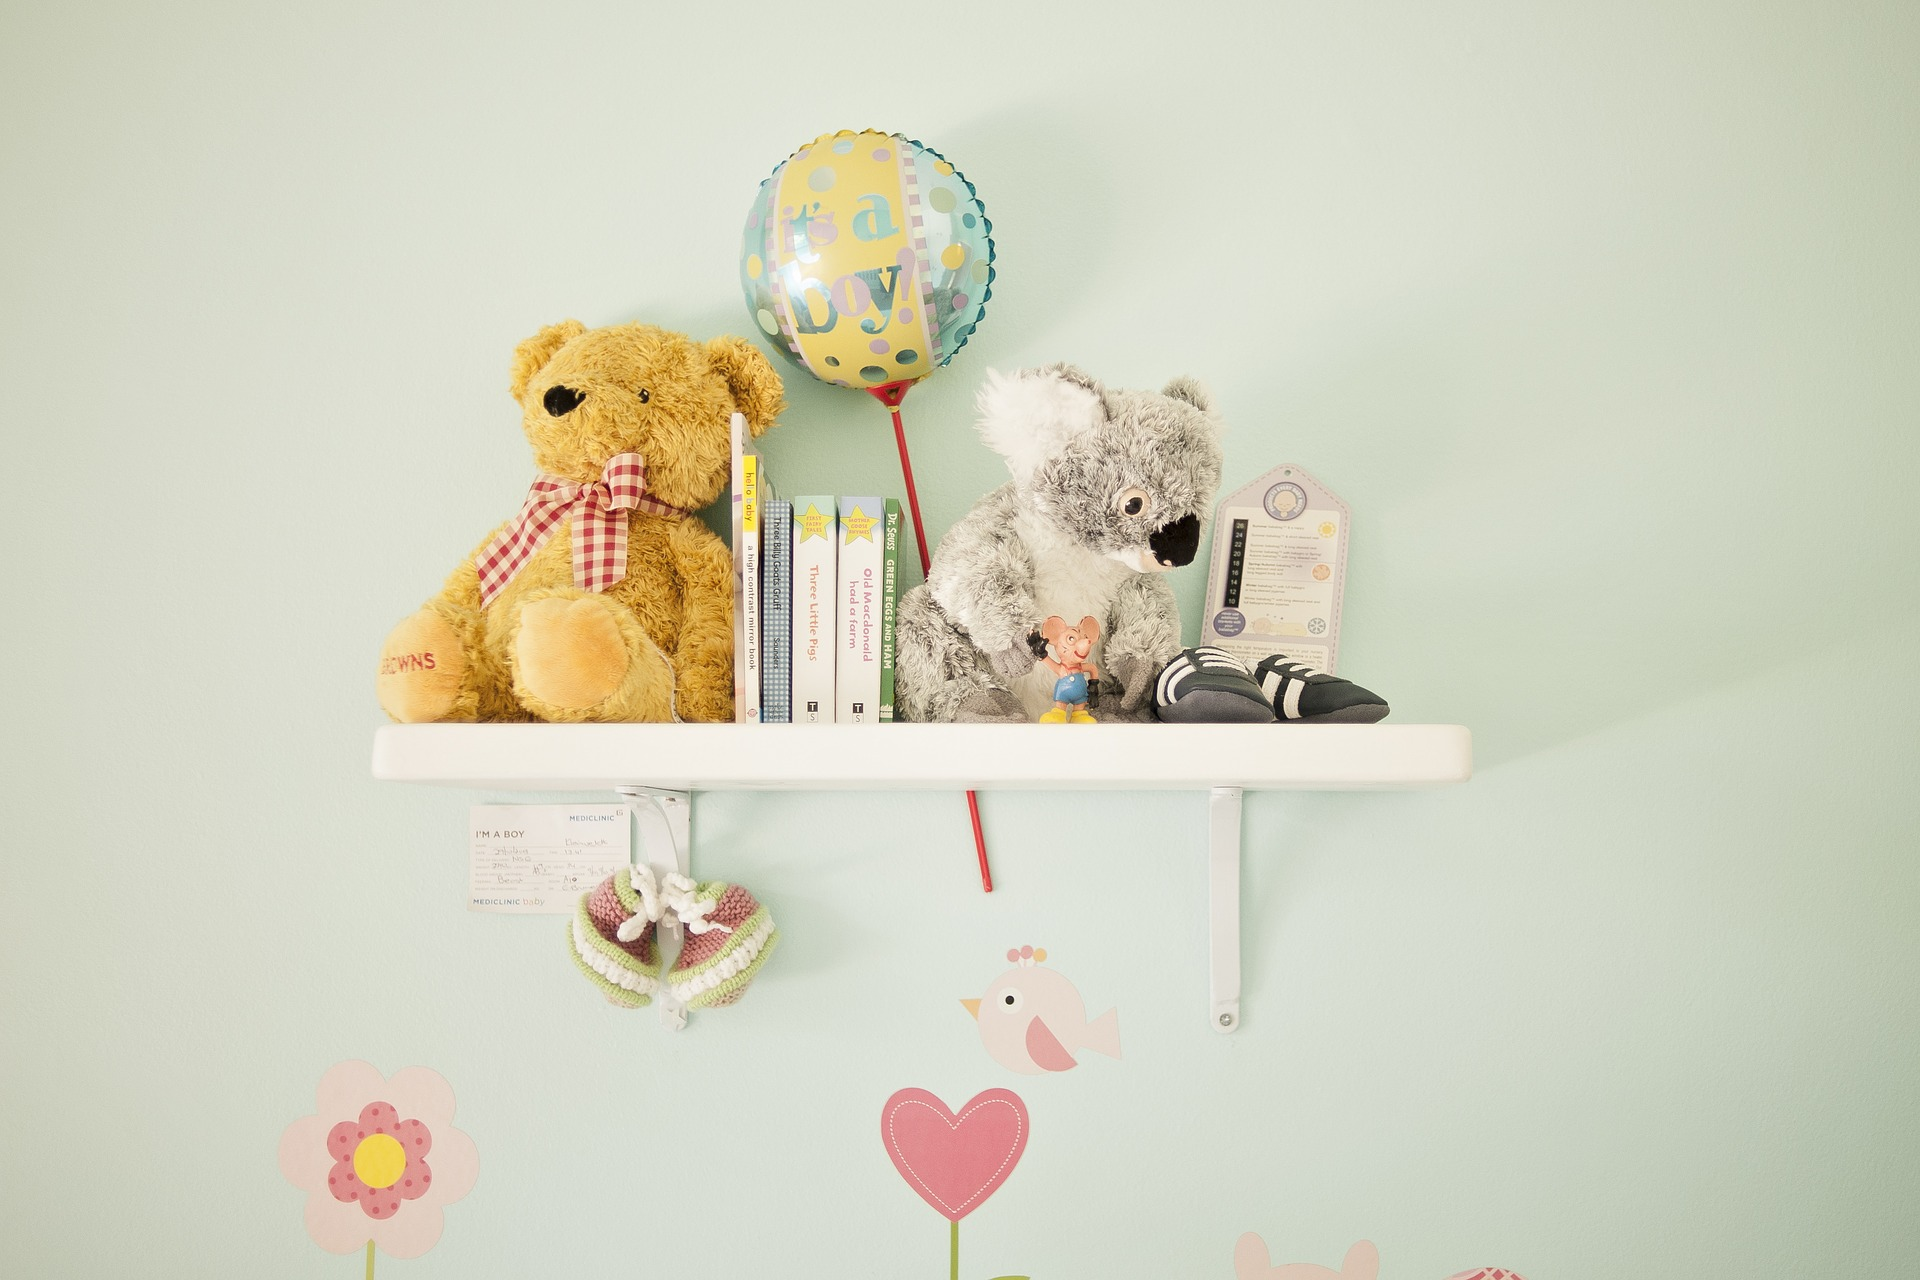 Nursery, Baby Shower, and Things that Only Happen In Pregnancy